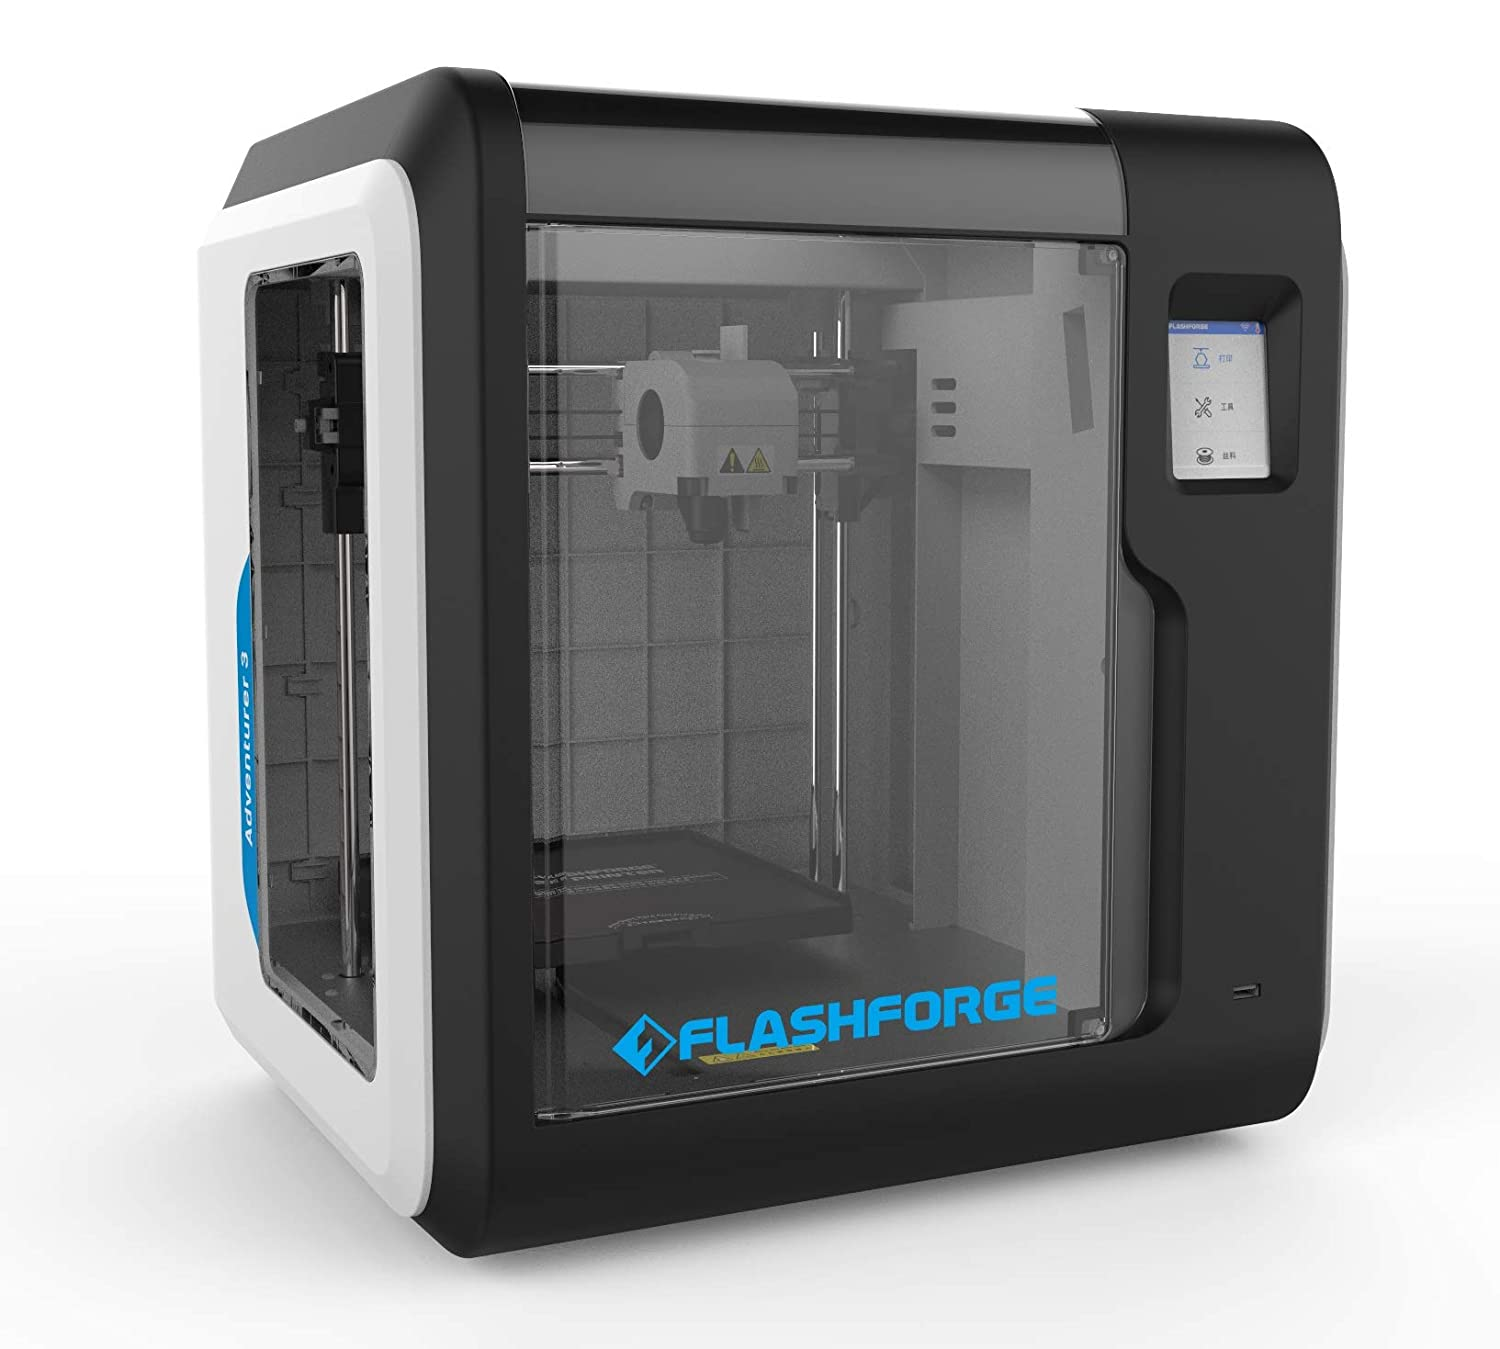 FLASHFORGE - Adventurer 3 - Impresora 3D Tamaño 150 x 150 x 150 mm ...